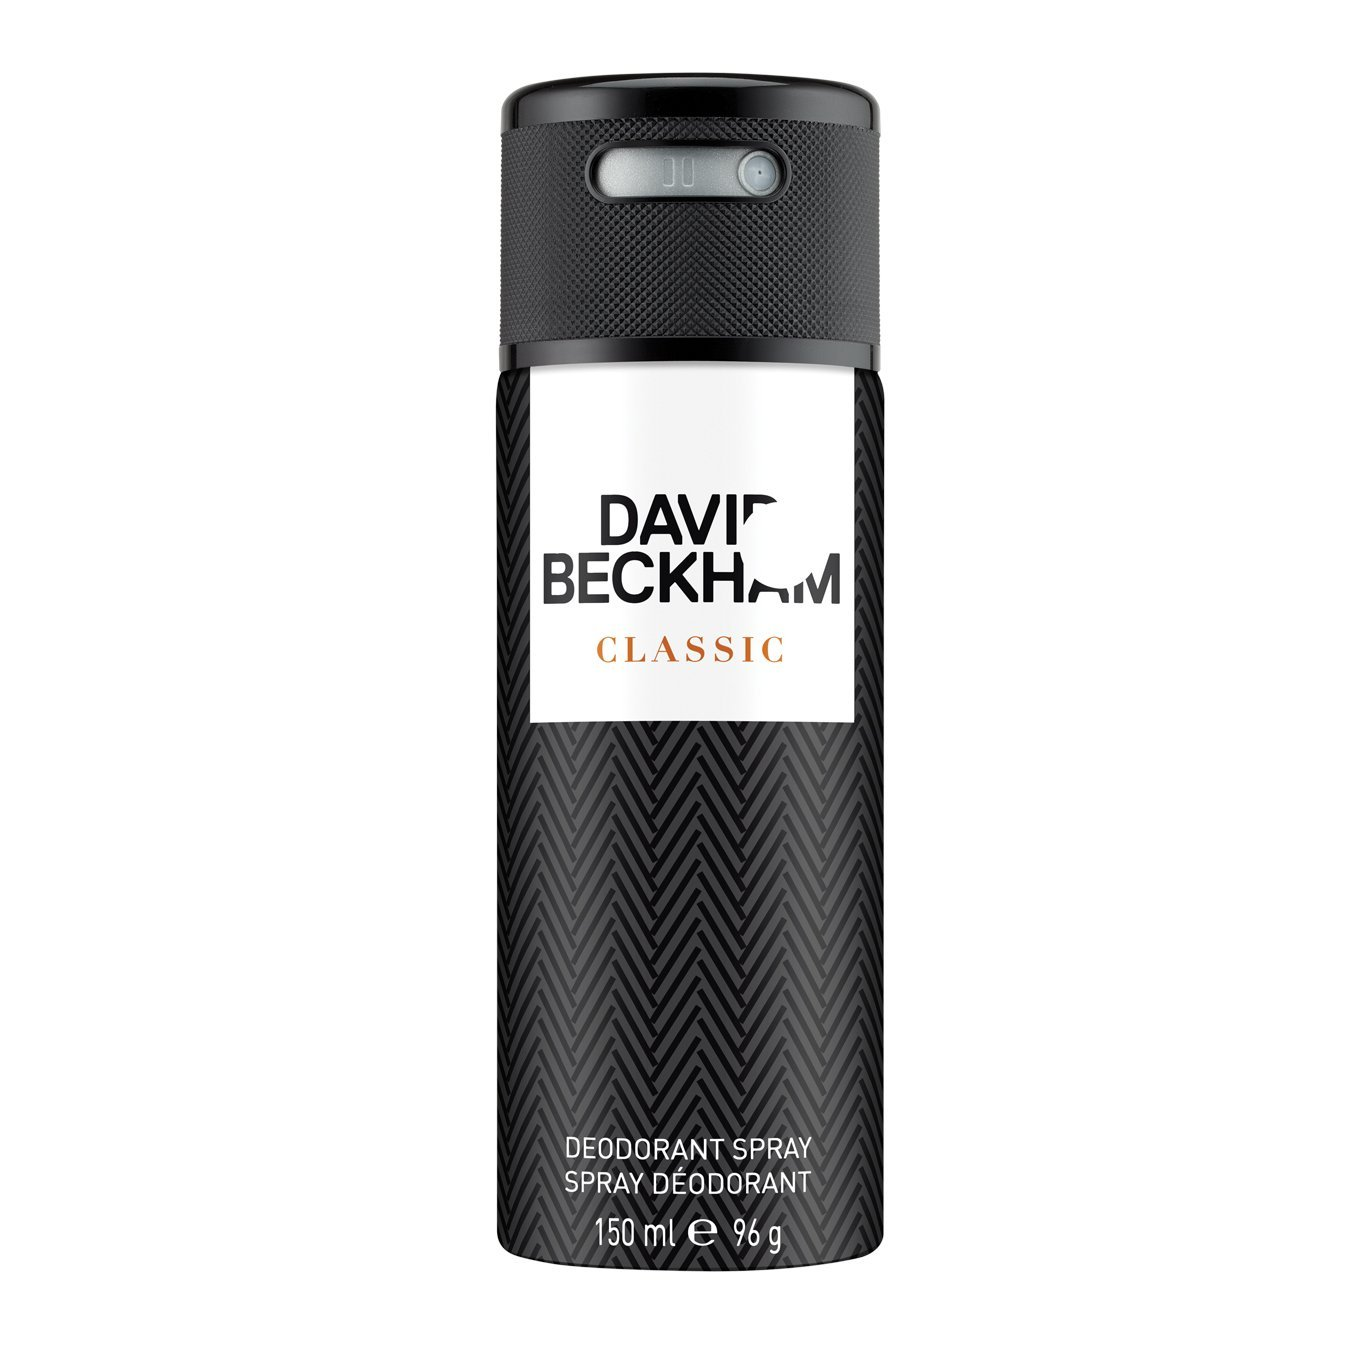 David Beckham Classic Deodorant Spray for Men, 150ml